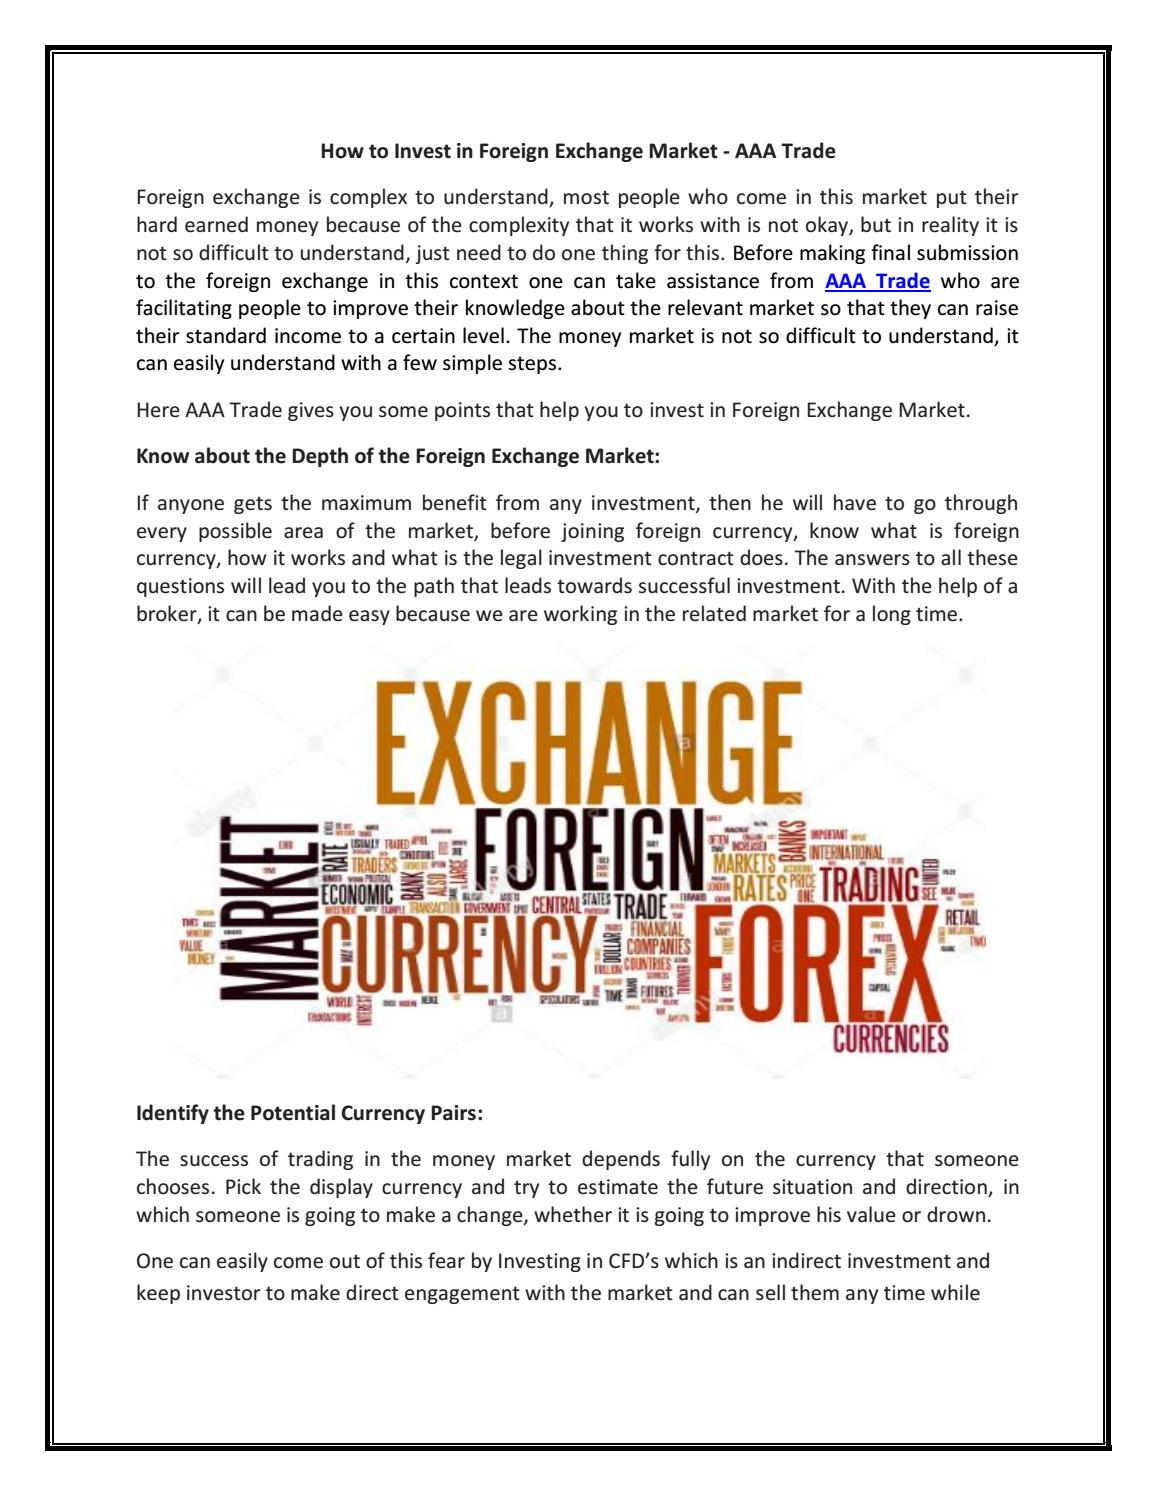 How To Invest In Foreign Exchange Market Aaa Trade By